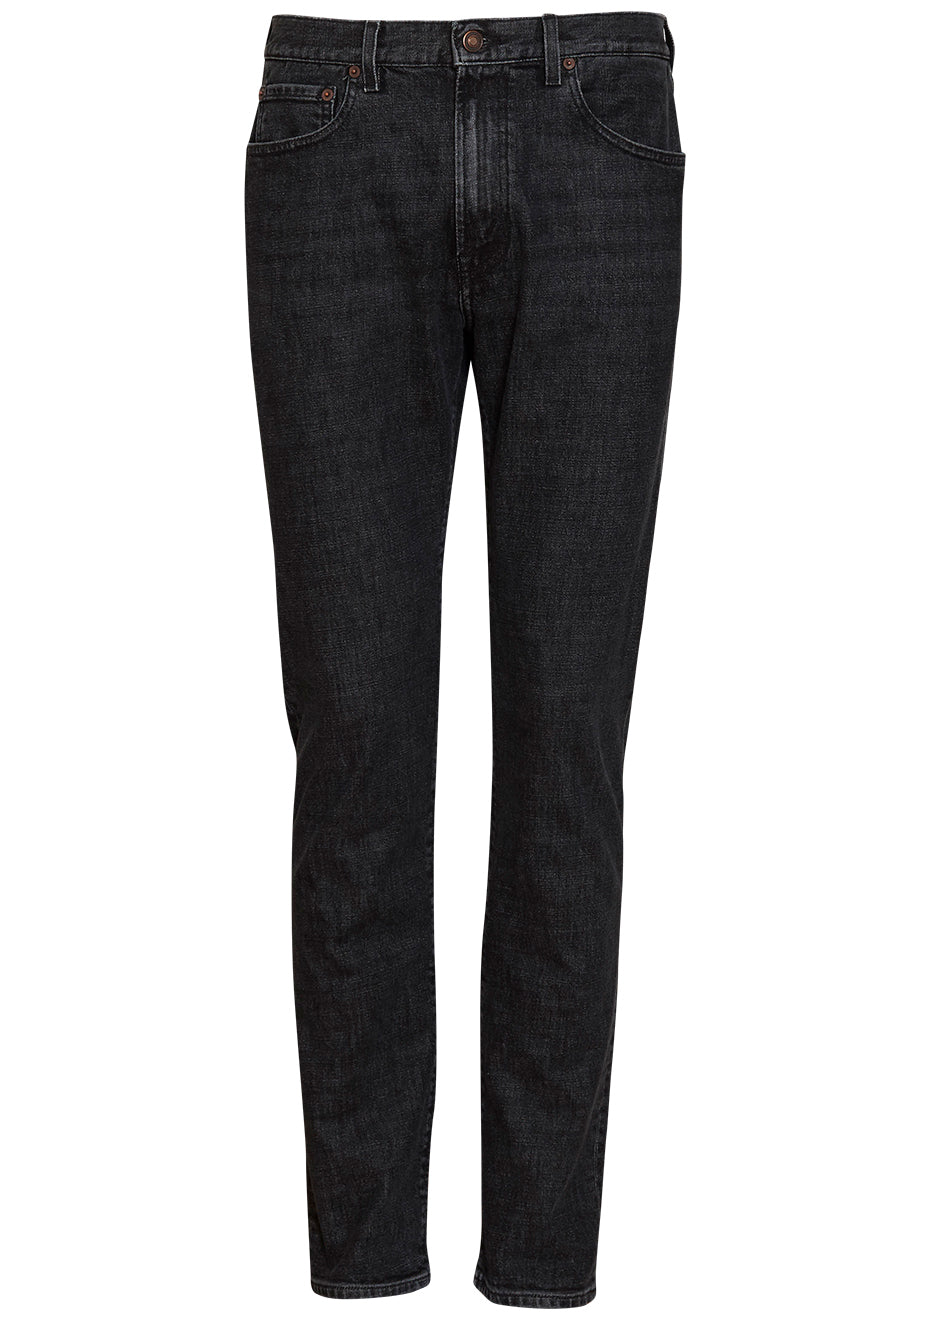 TM005 Black Stone Tapered Jeans